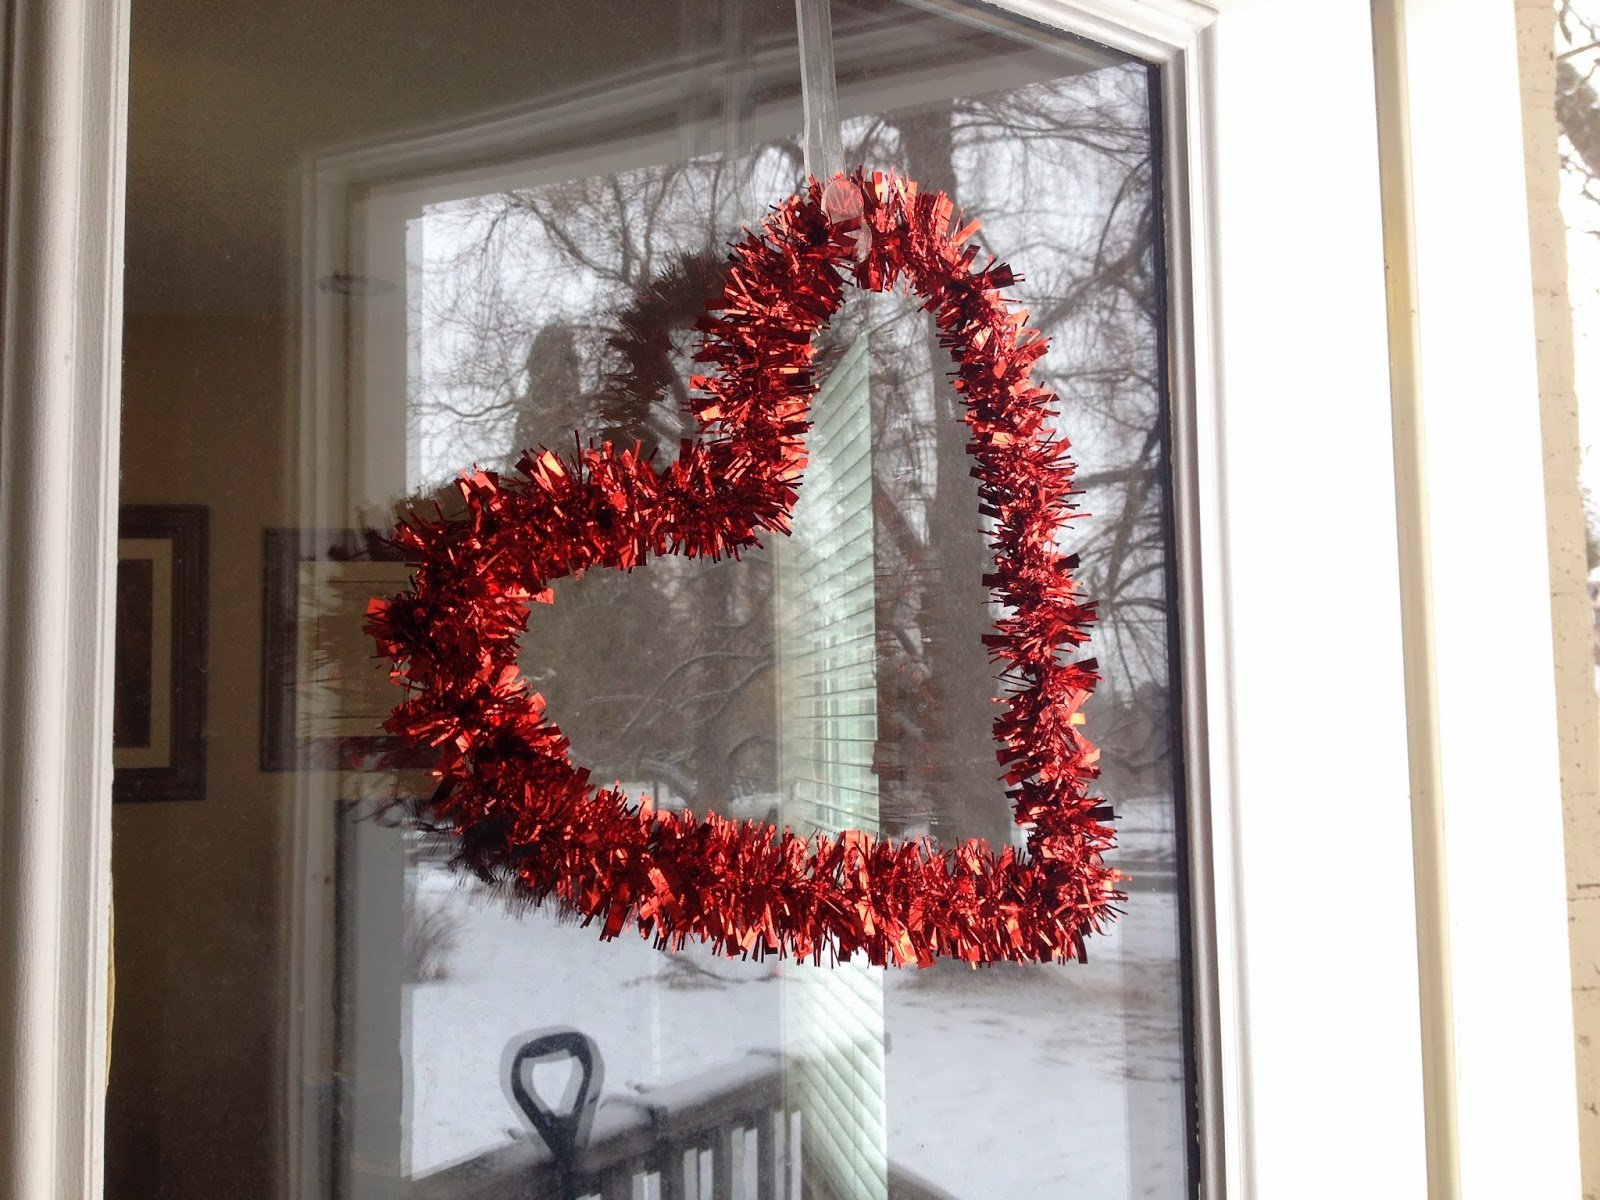 Voice of Reason: Dollar Store Heart Wreath